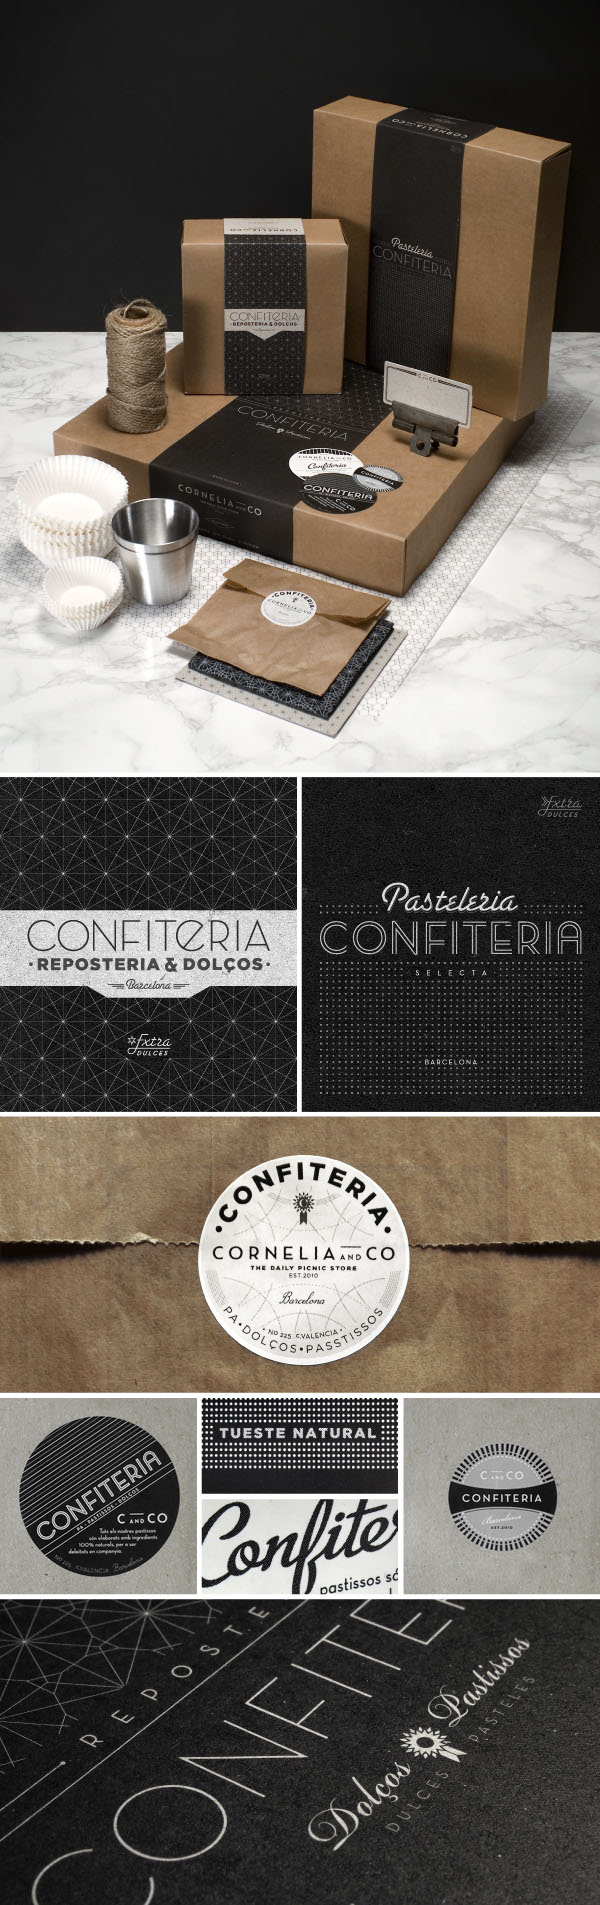 Cornelia and Co - Branding and Packaging by Oriol Gil